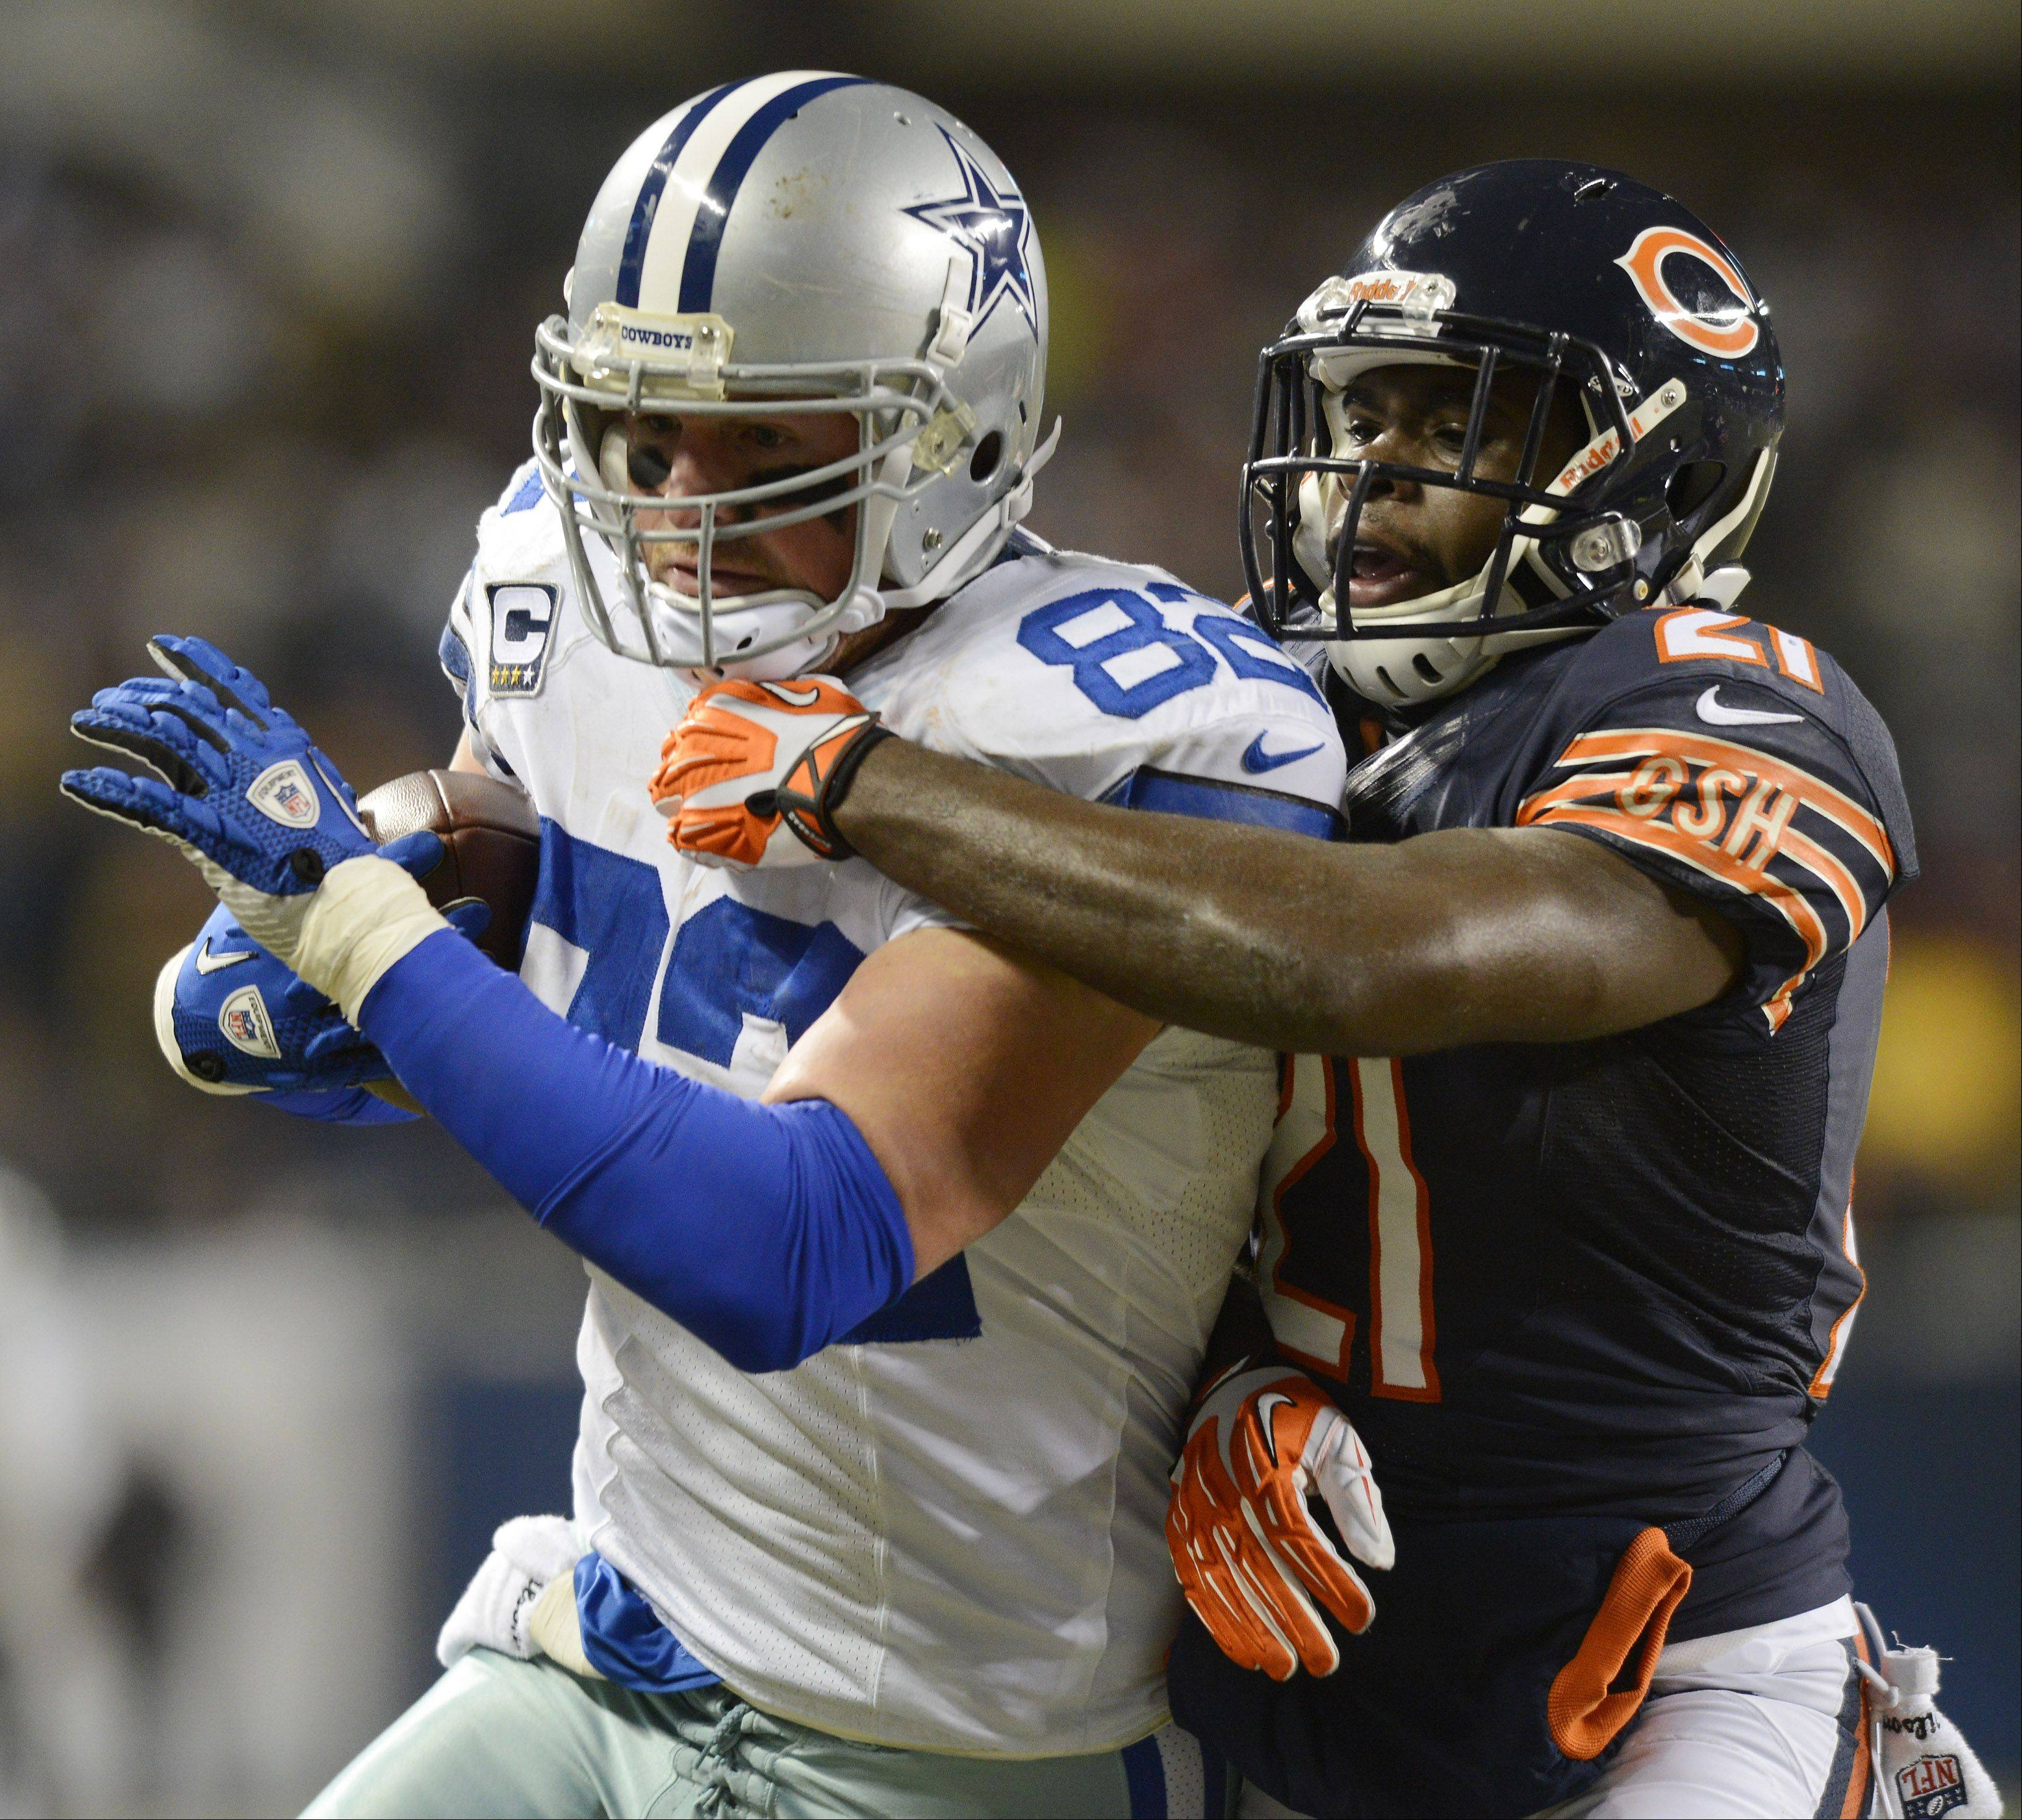 Chicago Bears strong safety Major Wright tries to hold back Dallas Cowboys tight end Jason Witten.